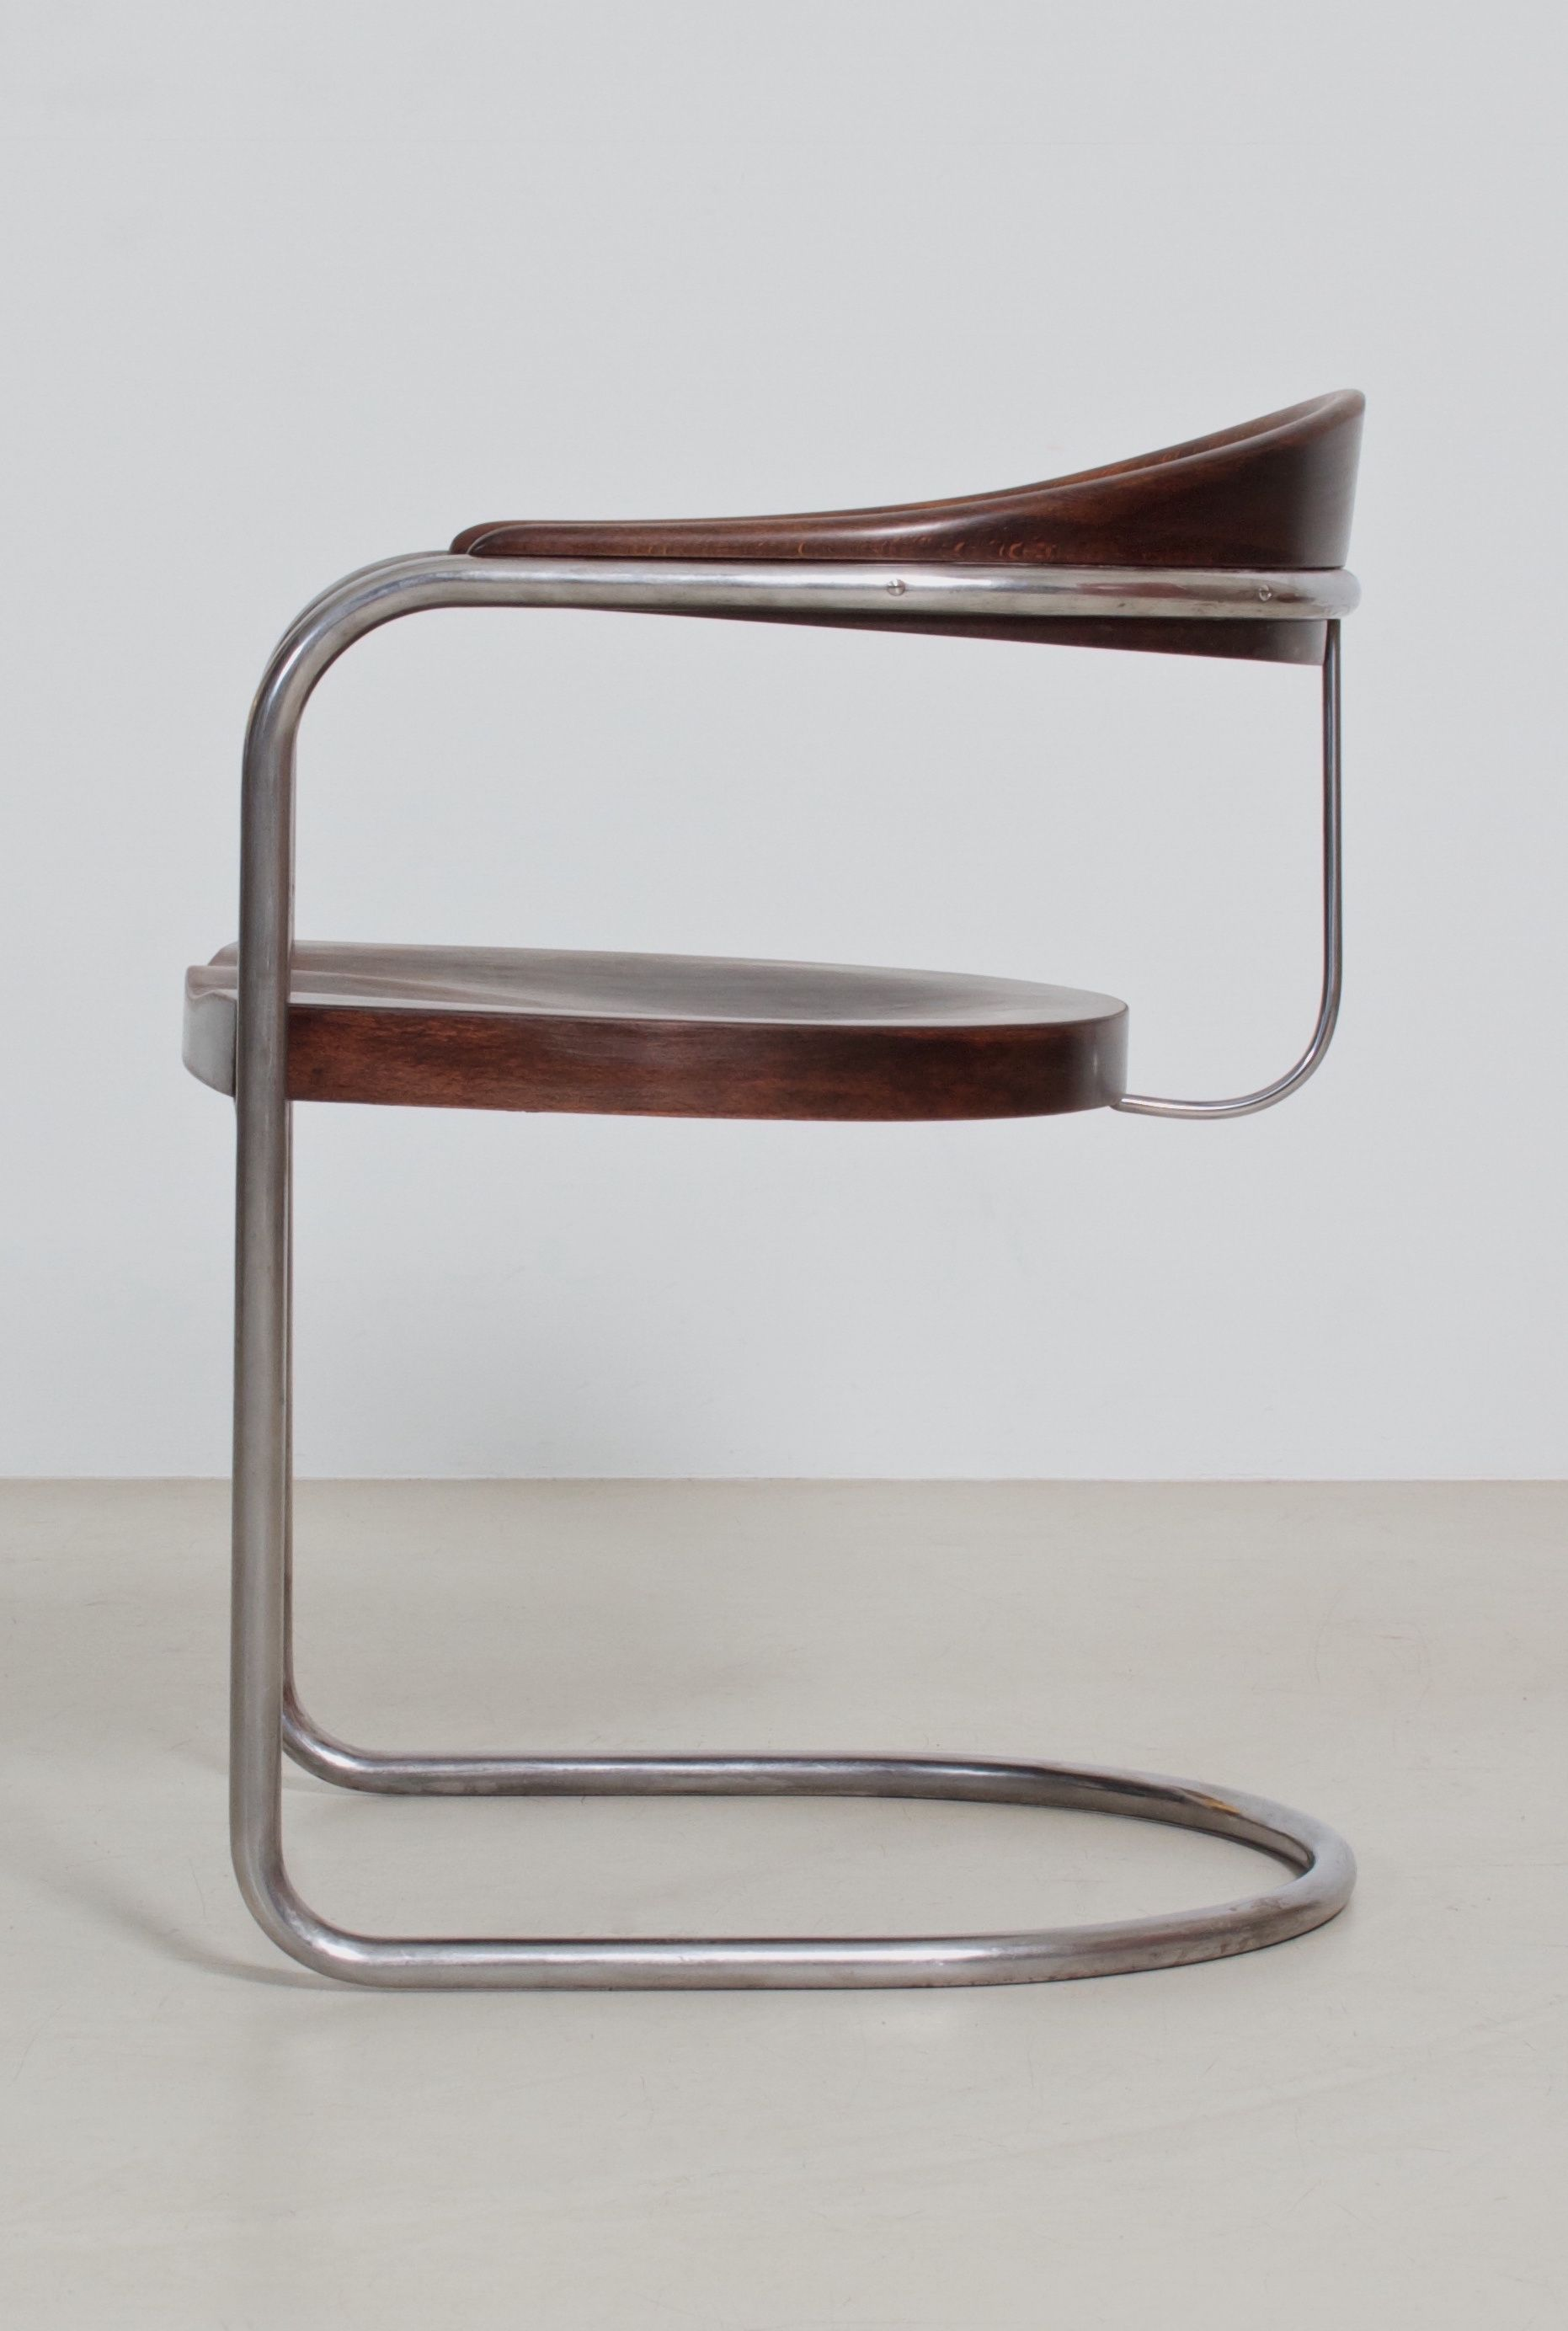 Hans And Wassili Luckhardt Ss33 Bauhaus Style Armchair 1935 For